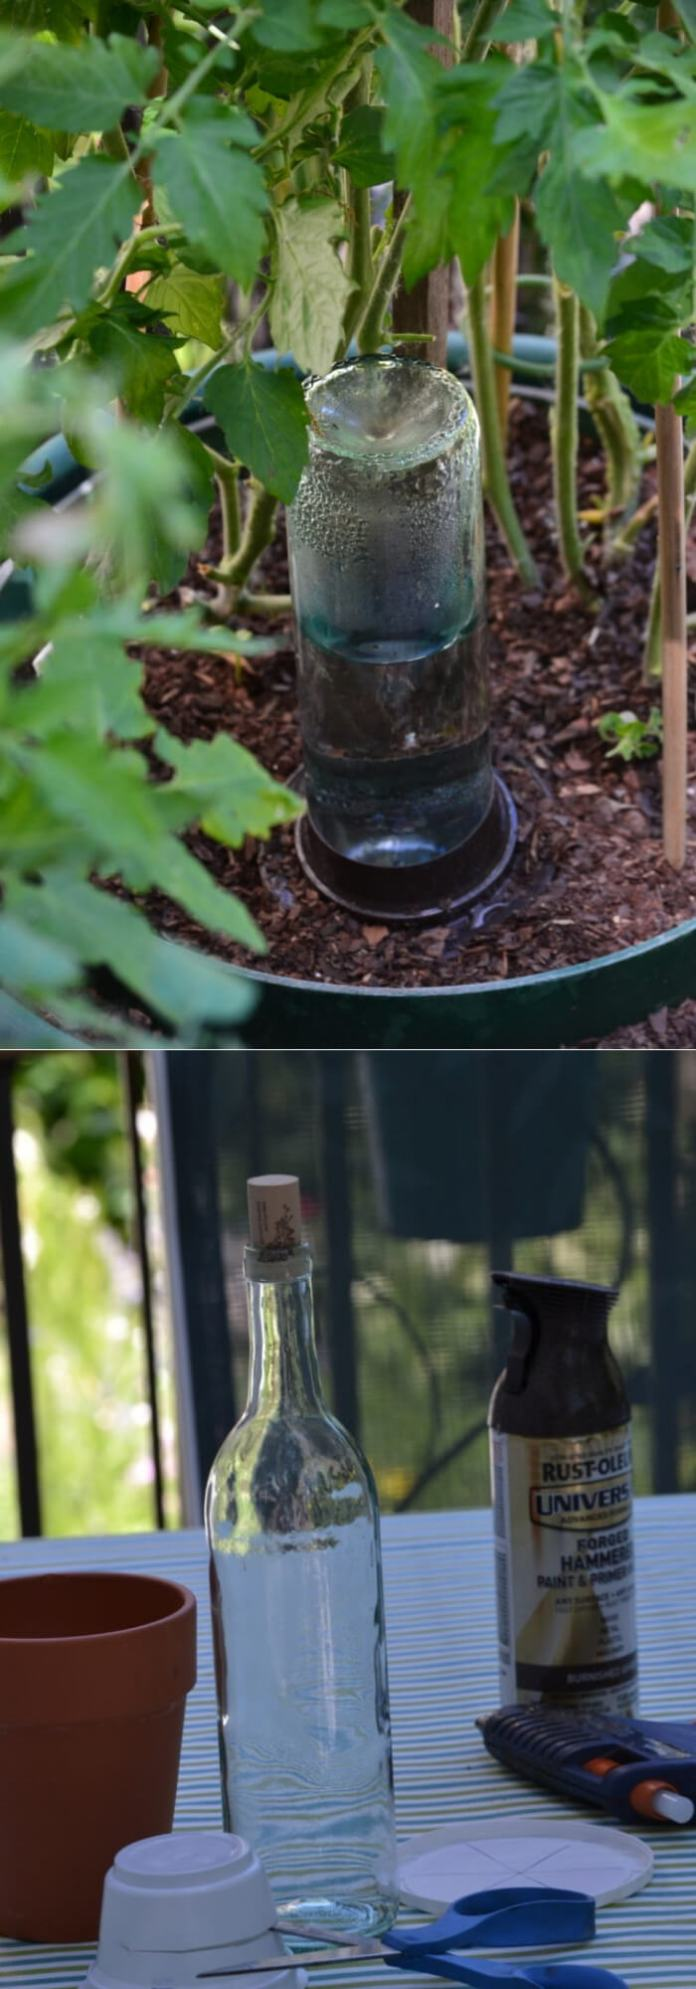 DIY Self-Watering Planters from Wine bottle | Best DIY Self-Watering System Ideas